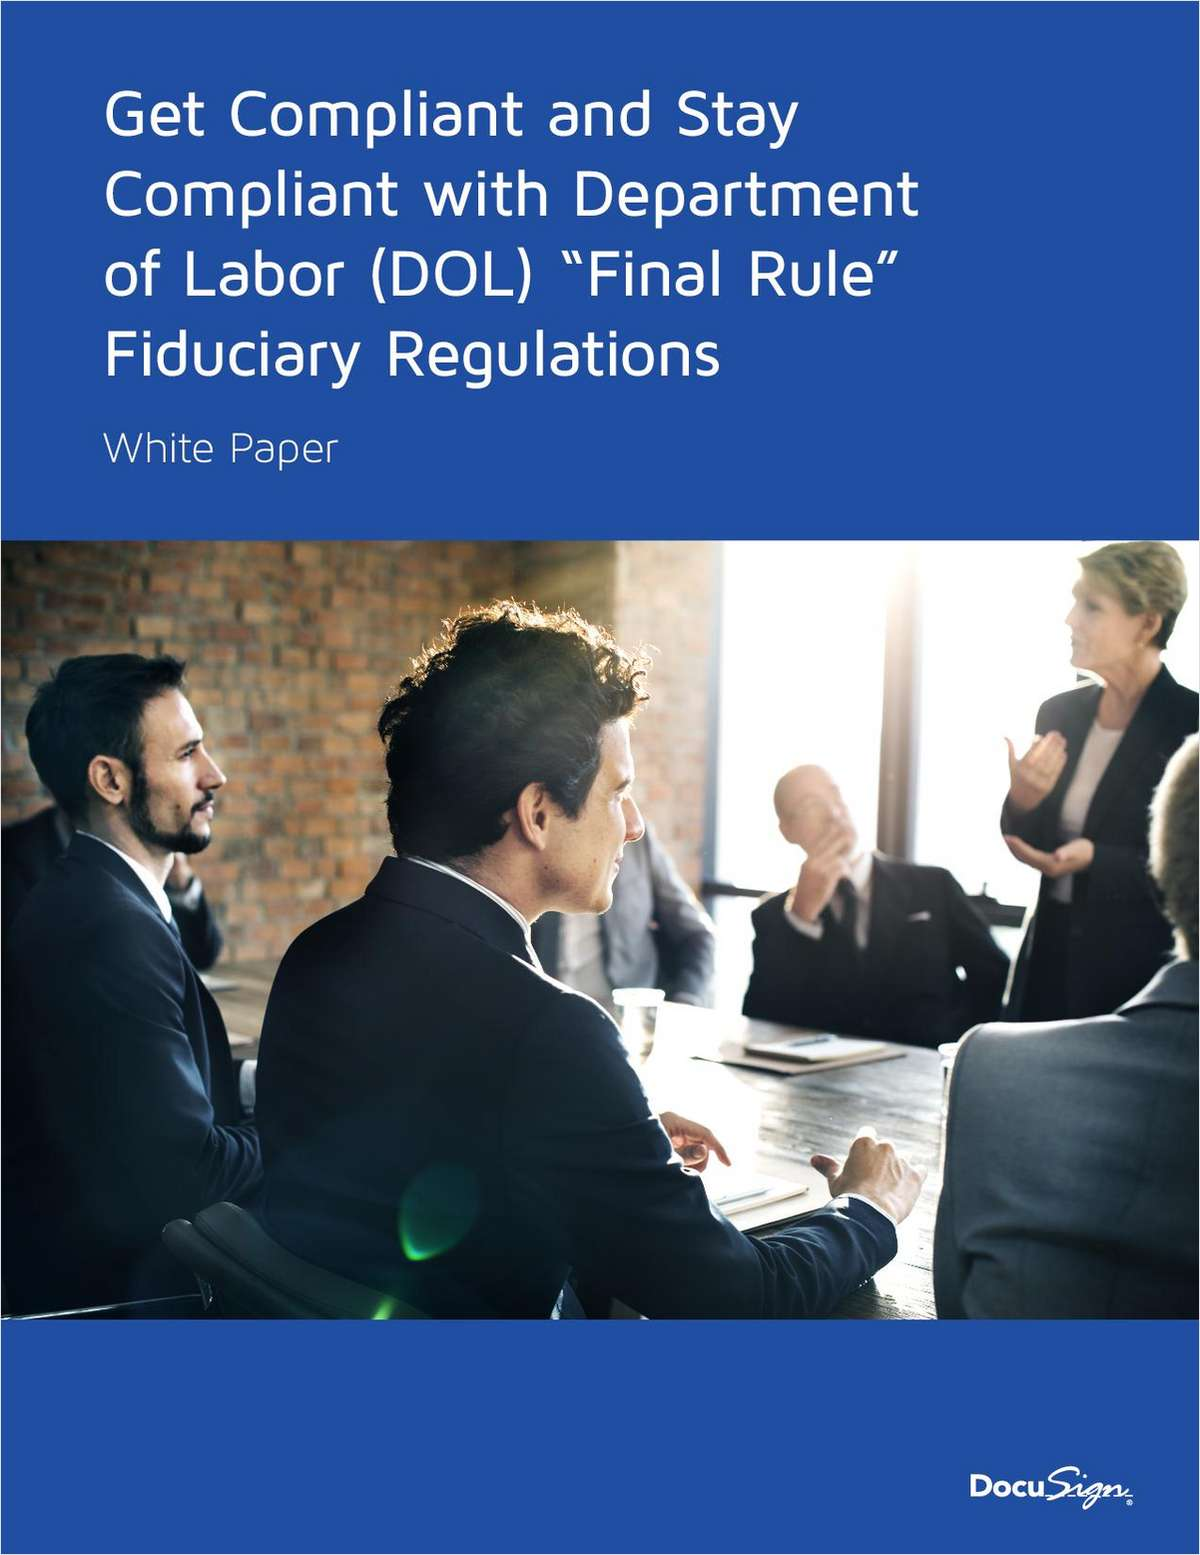 DOL Fiduciary Rule: How to Get & Stay Compliant